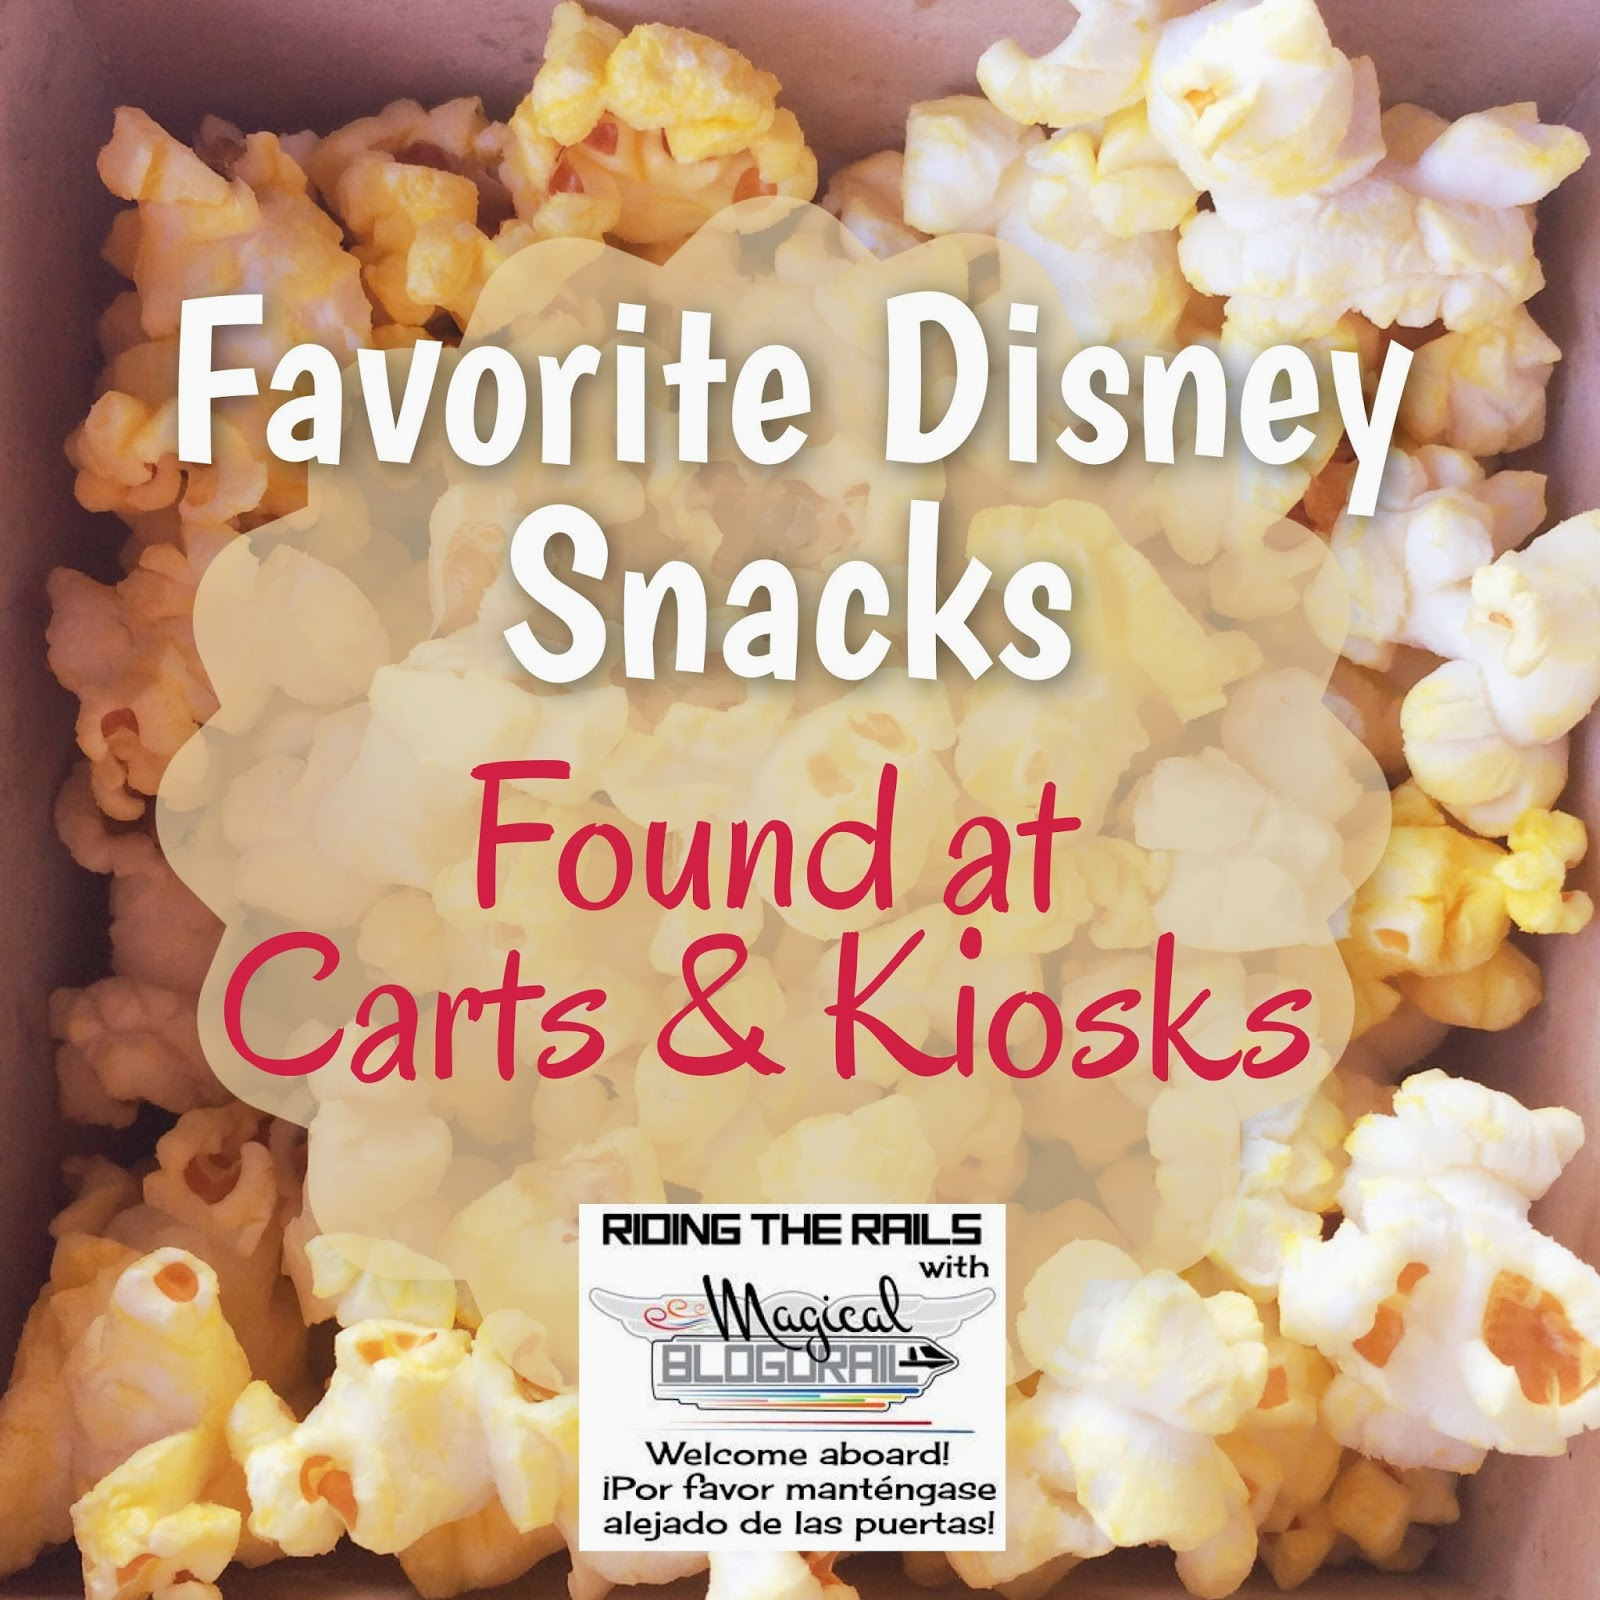 Favorite Disney Snacks at Carts & Kiosks